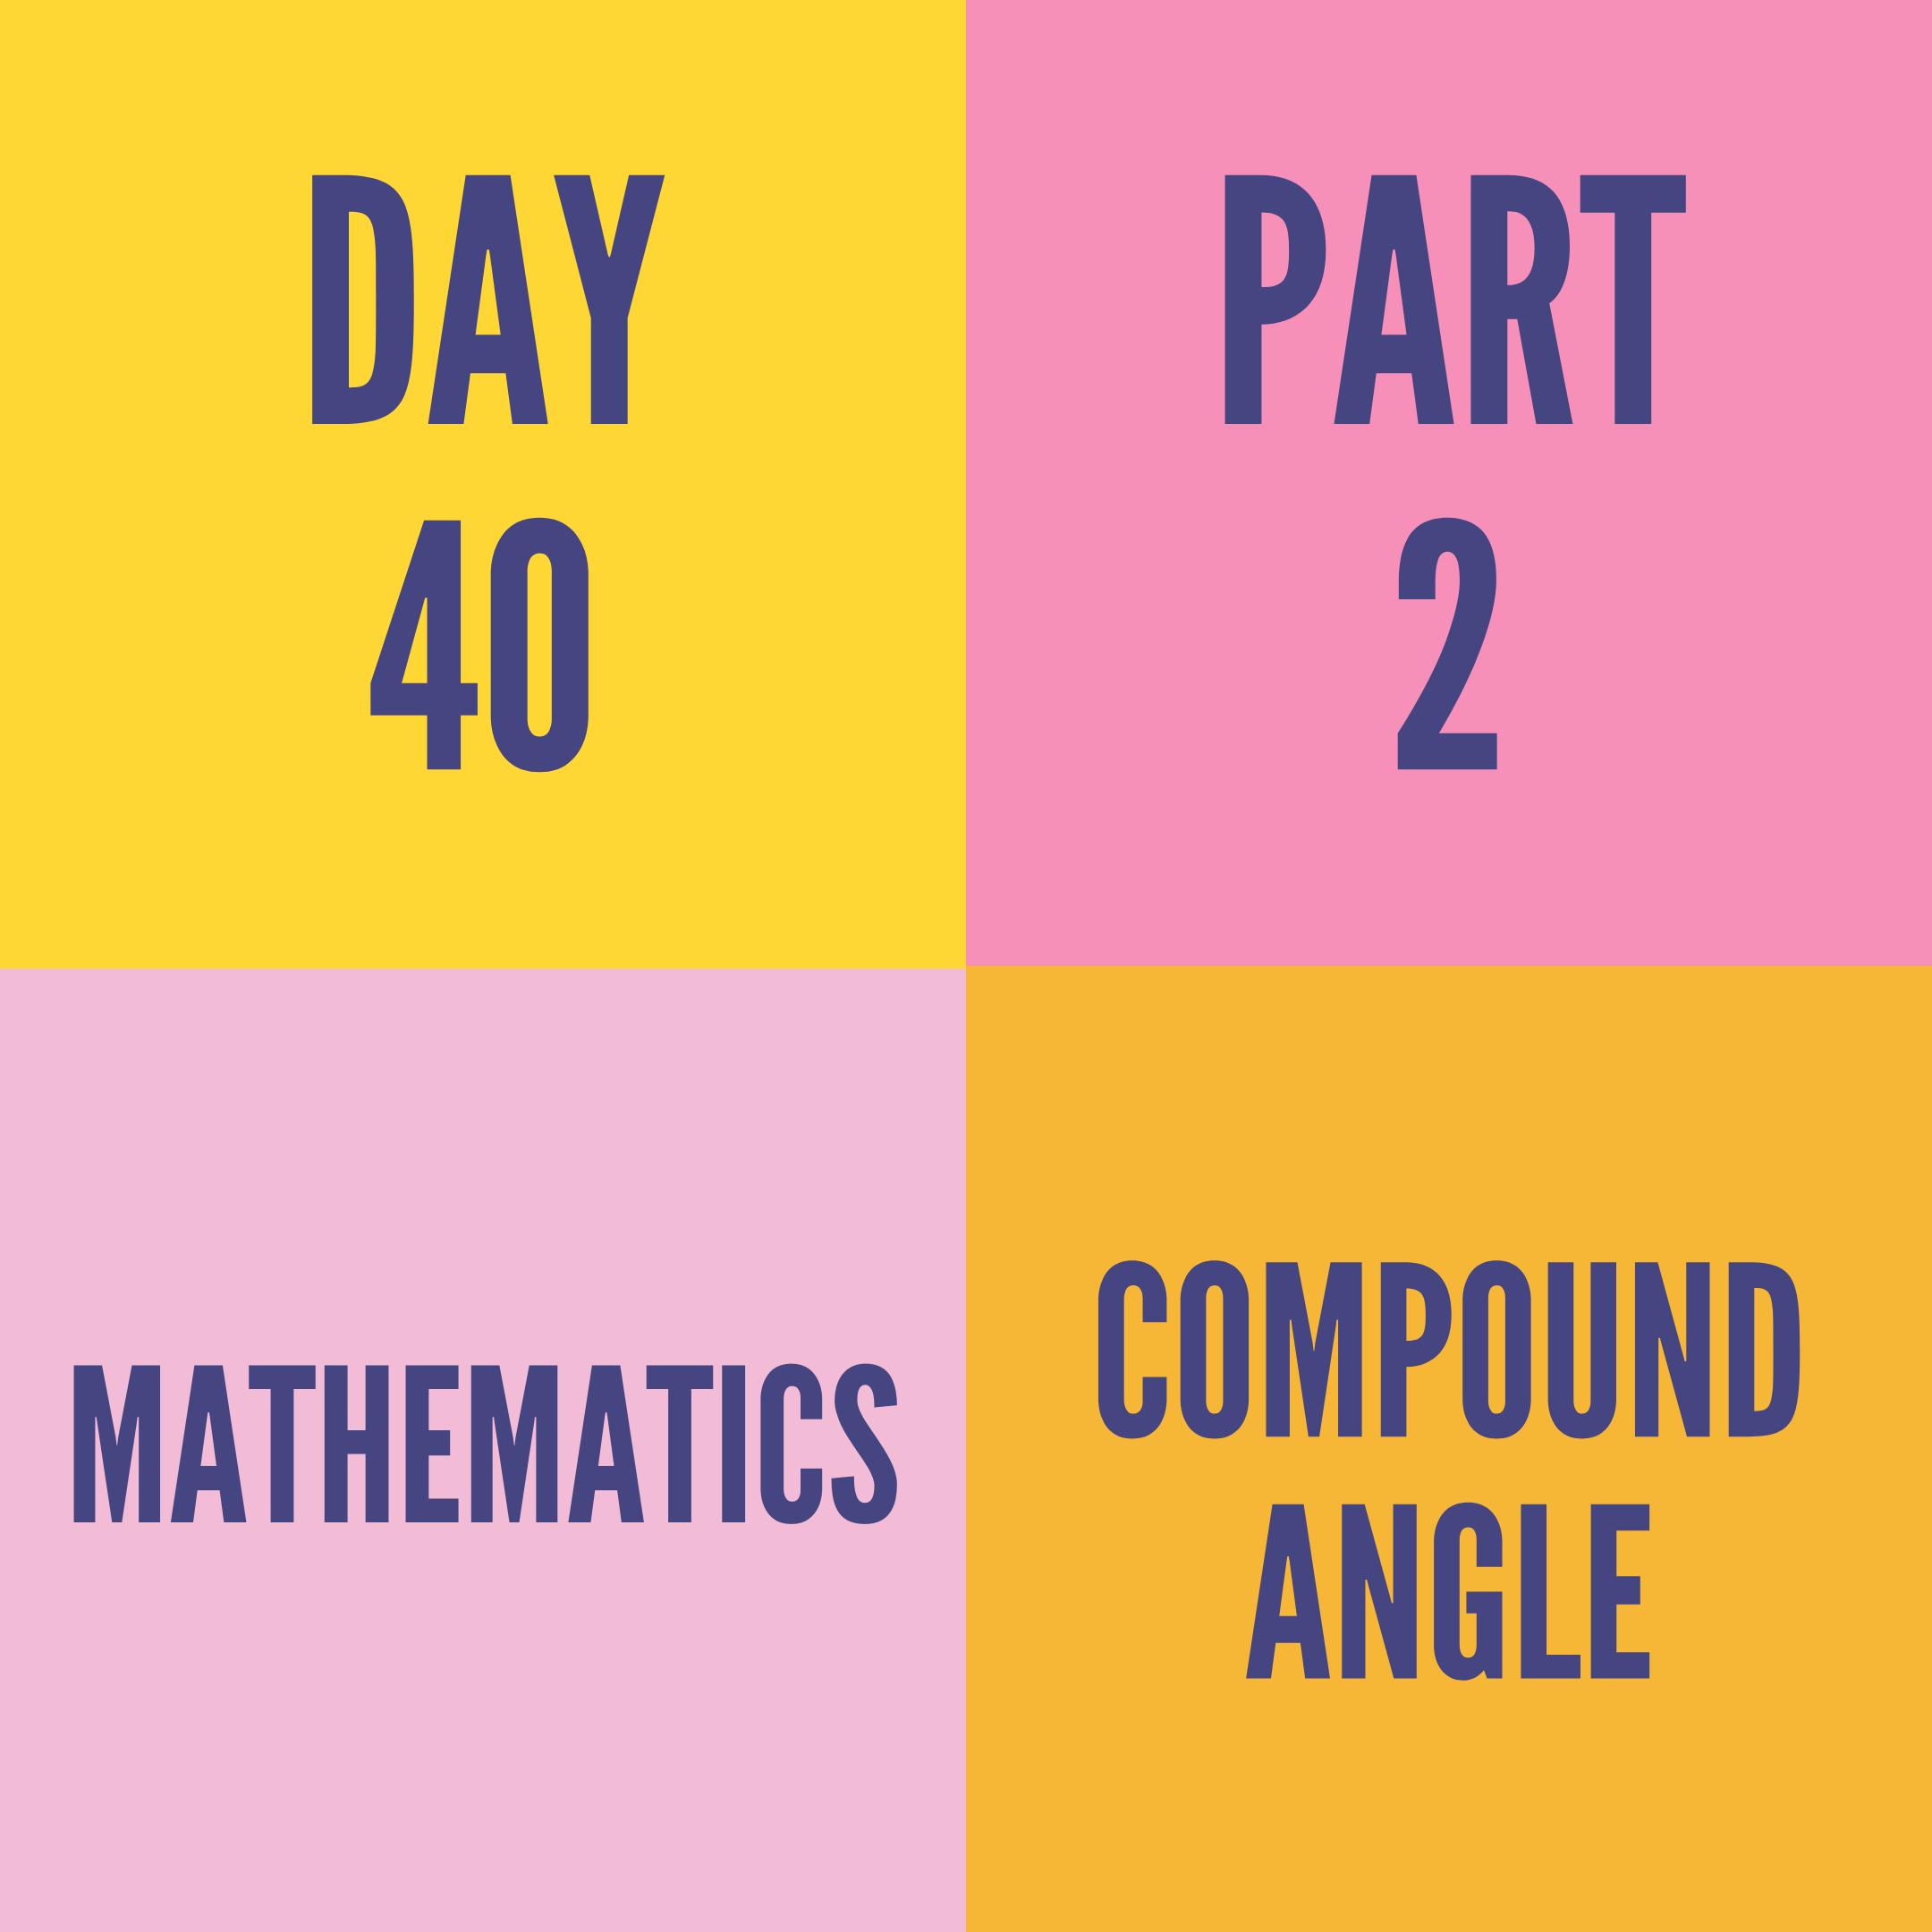 DAY-40 PART-2 COMPOUND ANGLE